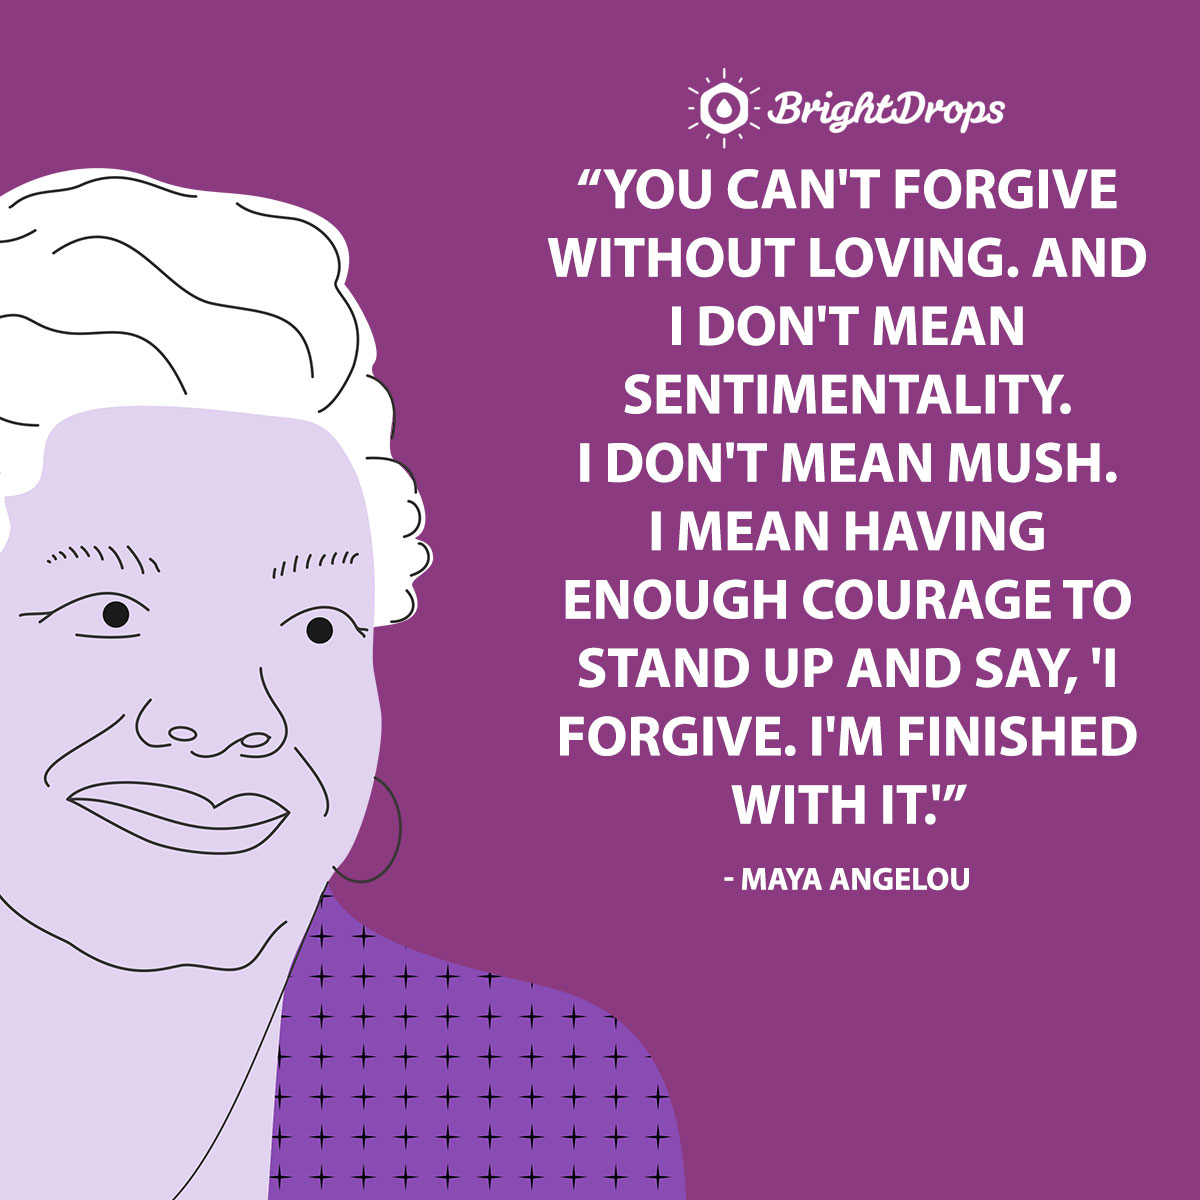 You can't forgive without loving. And I don't mean sentimentality. I don't mean mush. I mean having enough courage to stand up and say, 'I forgive. I'm finished with it'. - Maya Angelou